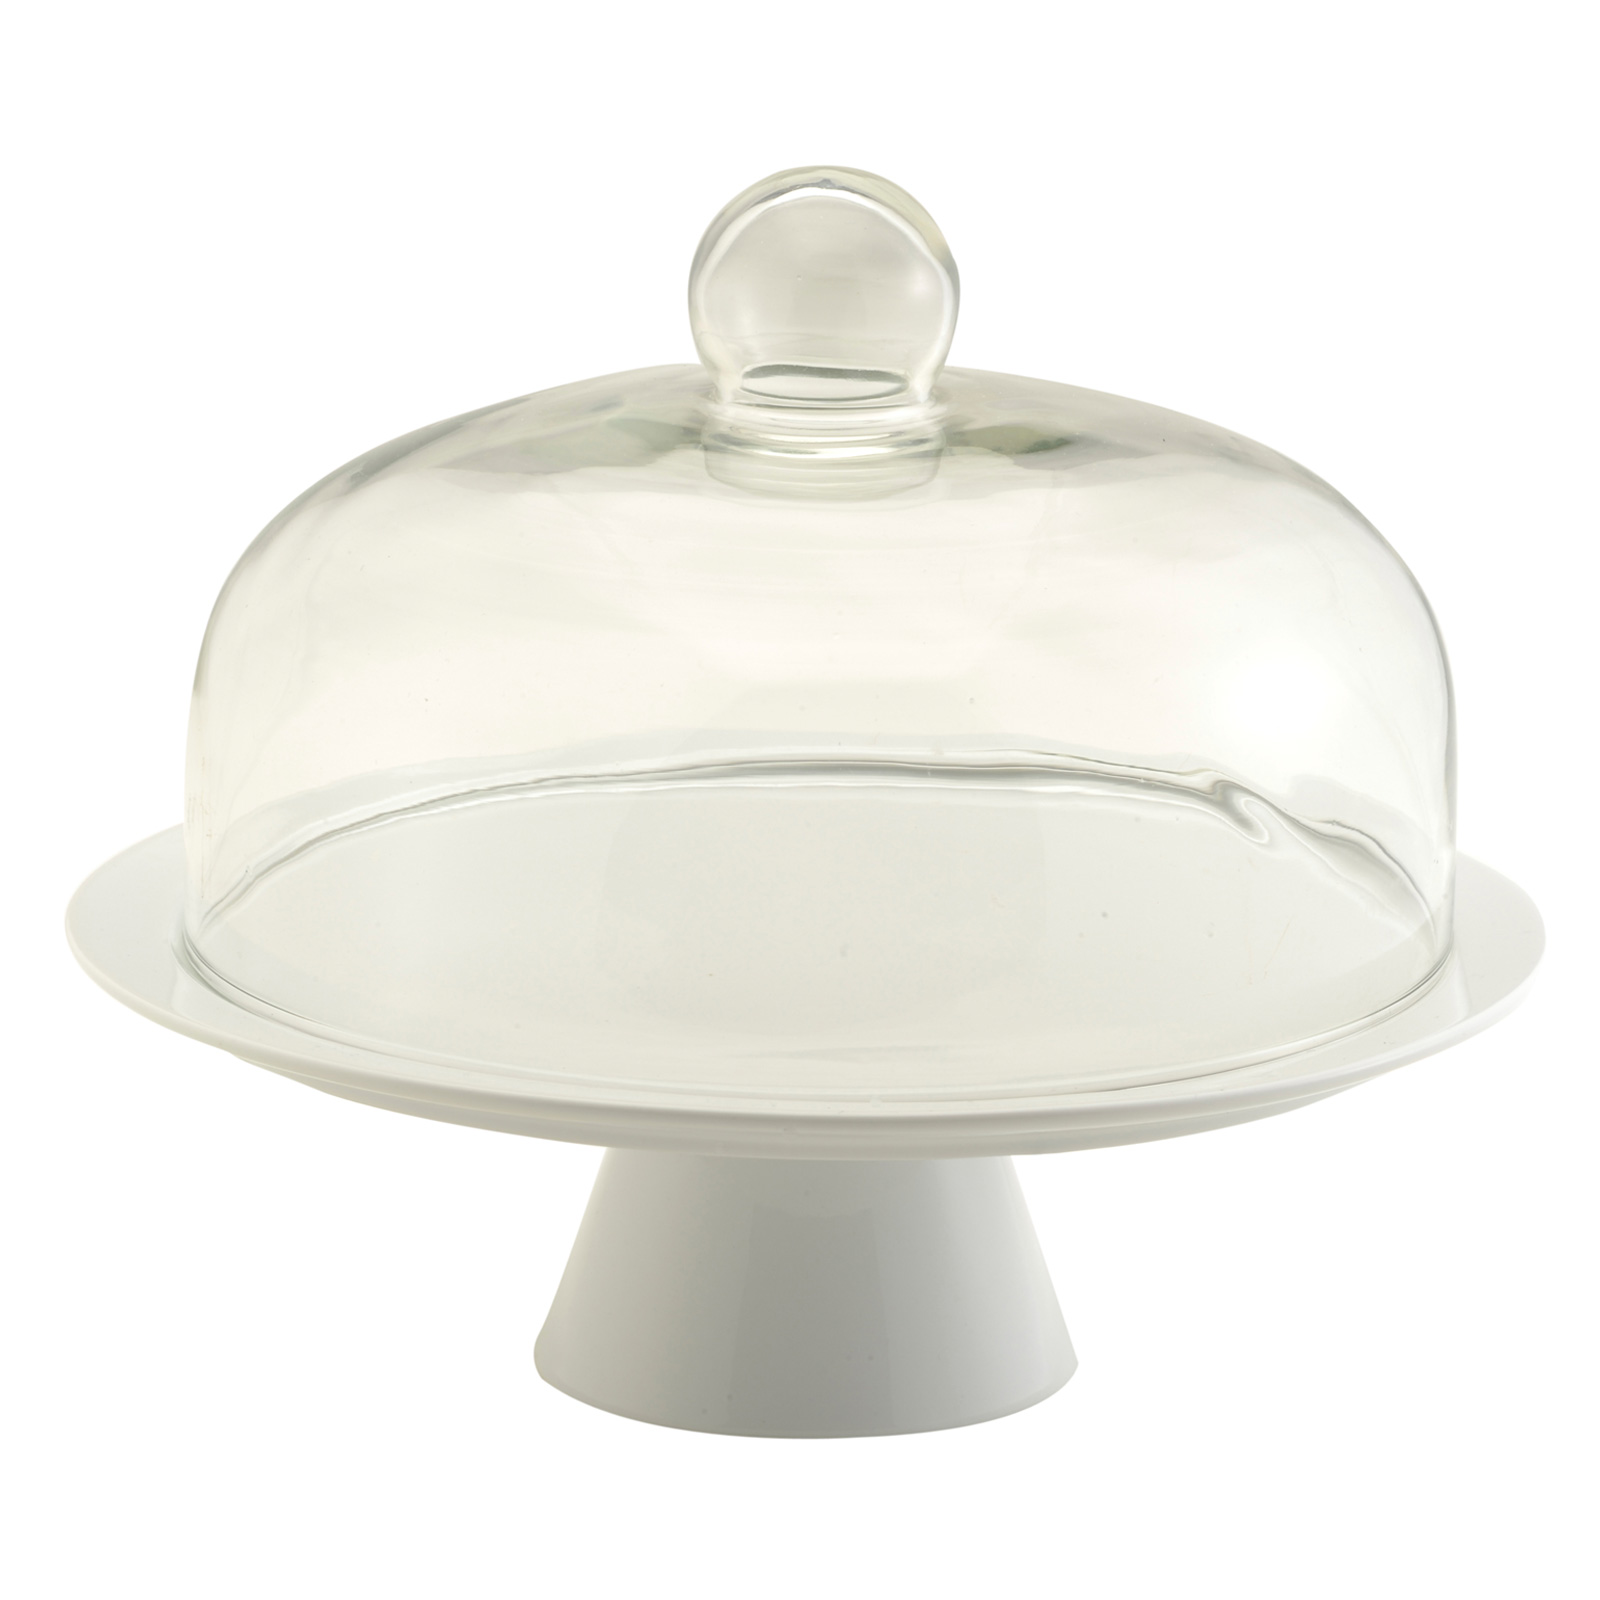 Cake Stand with Dome - Complete Set by BIA